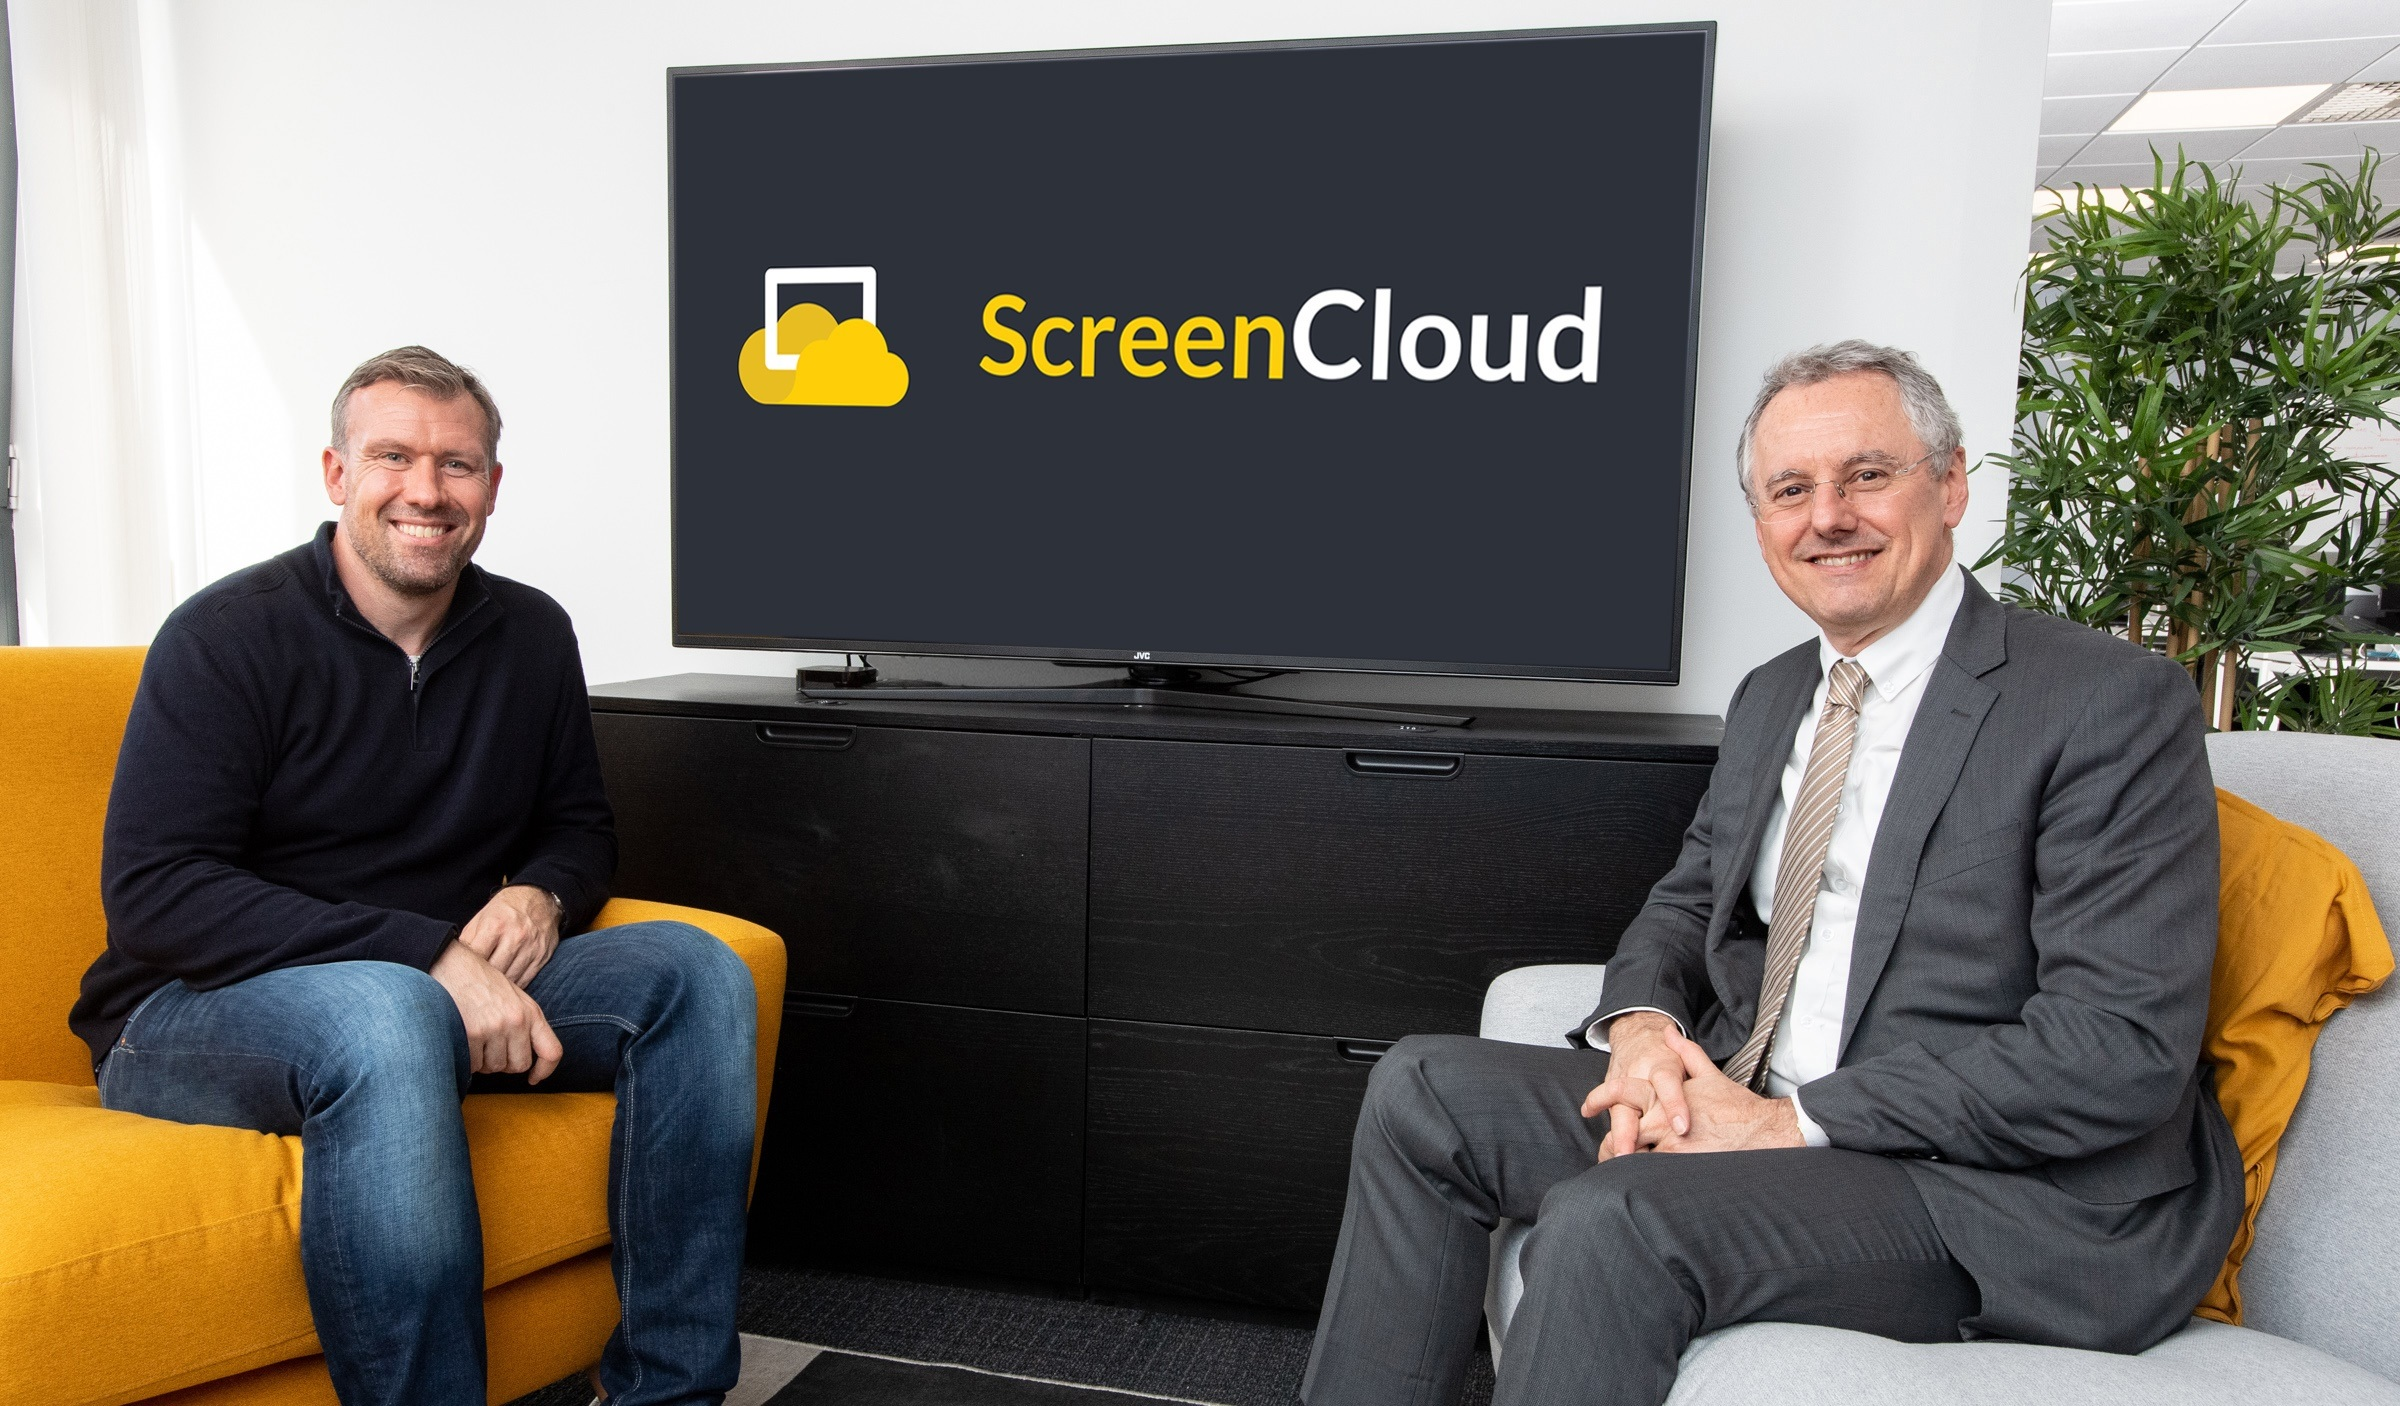 ScreenCloud Northern Ireland - NI Business and Tech news - Tall Paul Marketing, Freelance Copywriter - Newry business